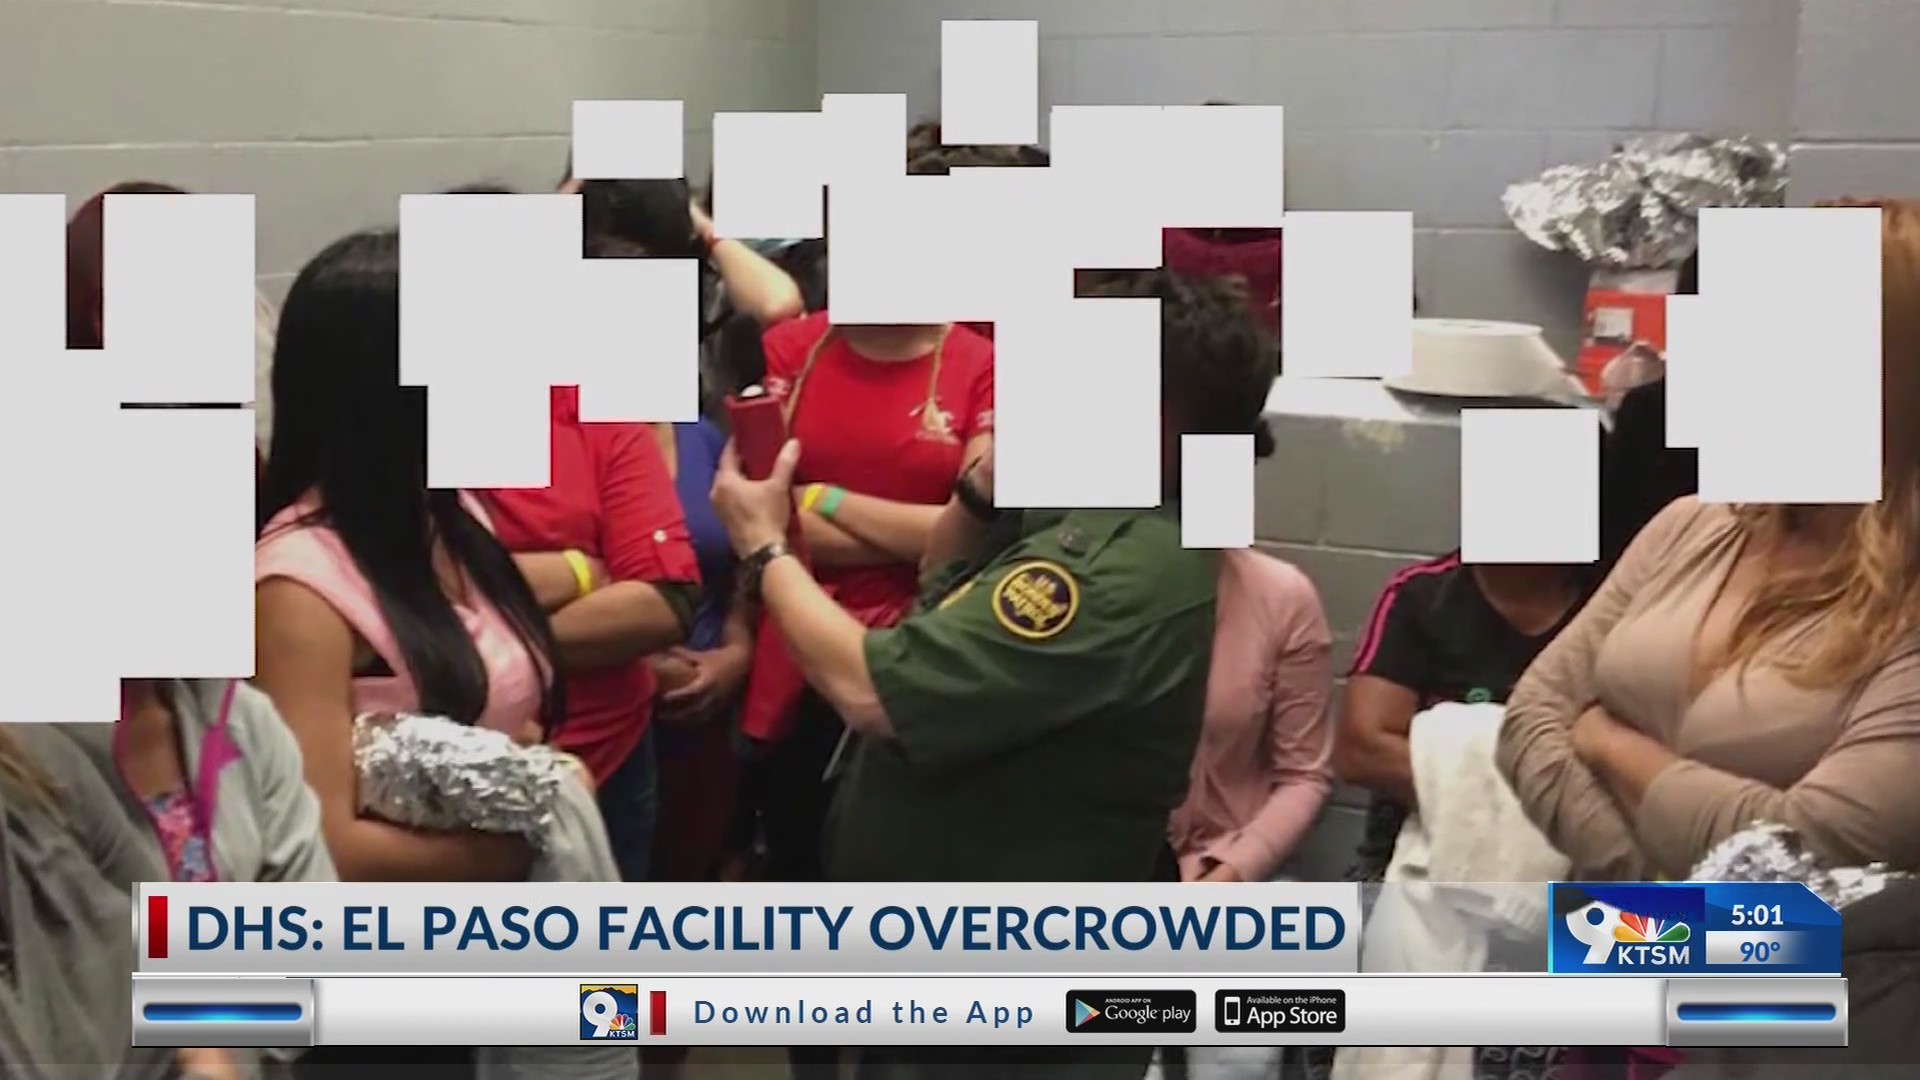 Overcrowding at El Paso migrant facilities creating dangerous conditions